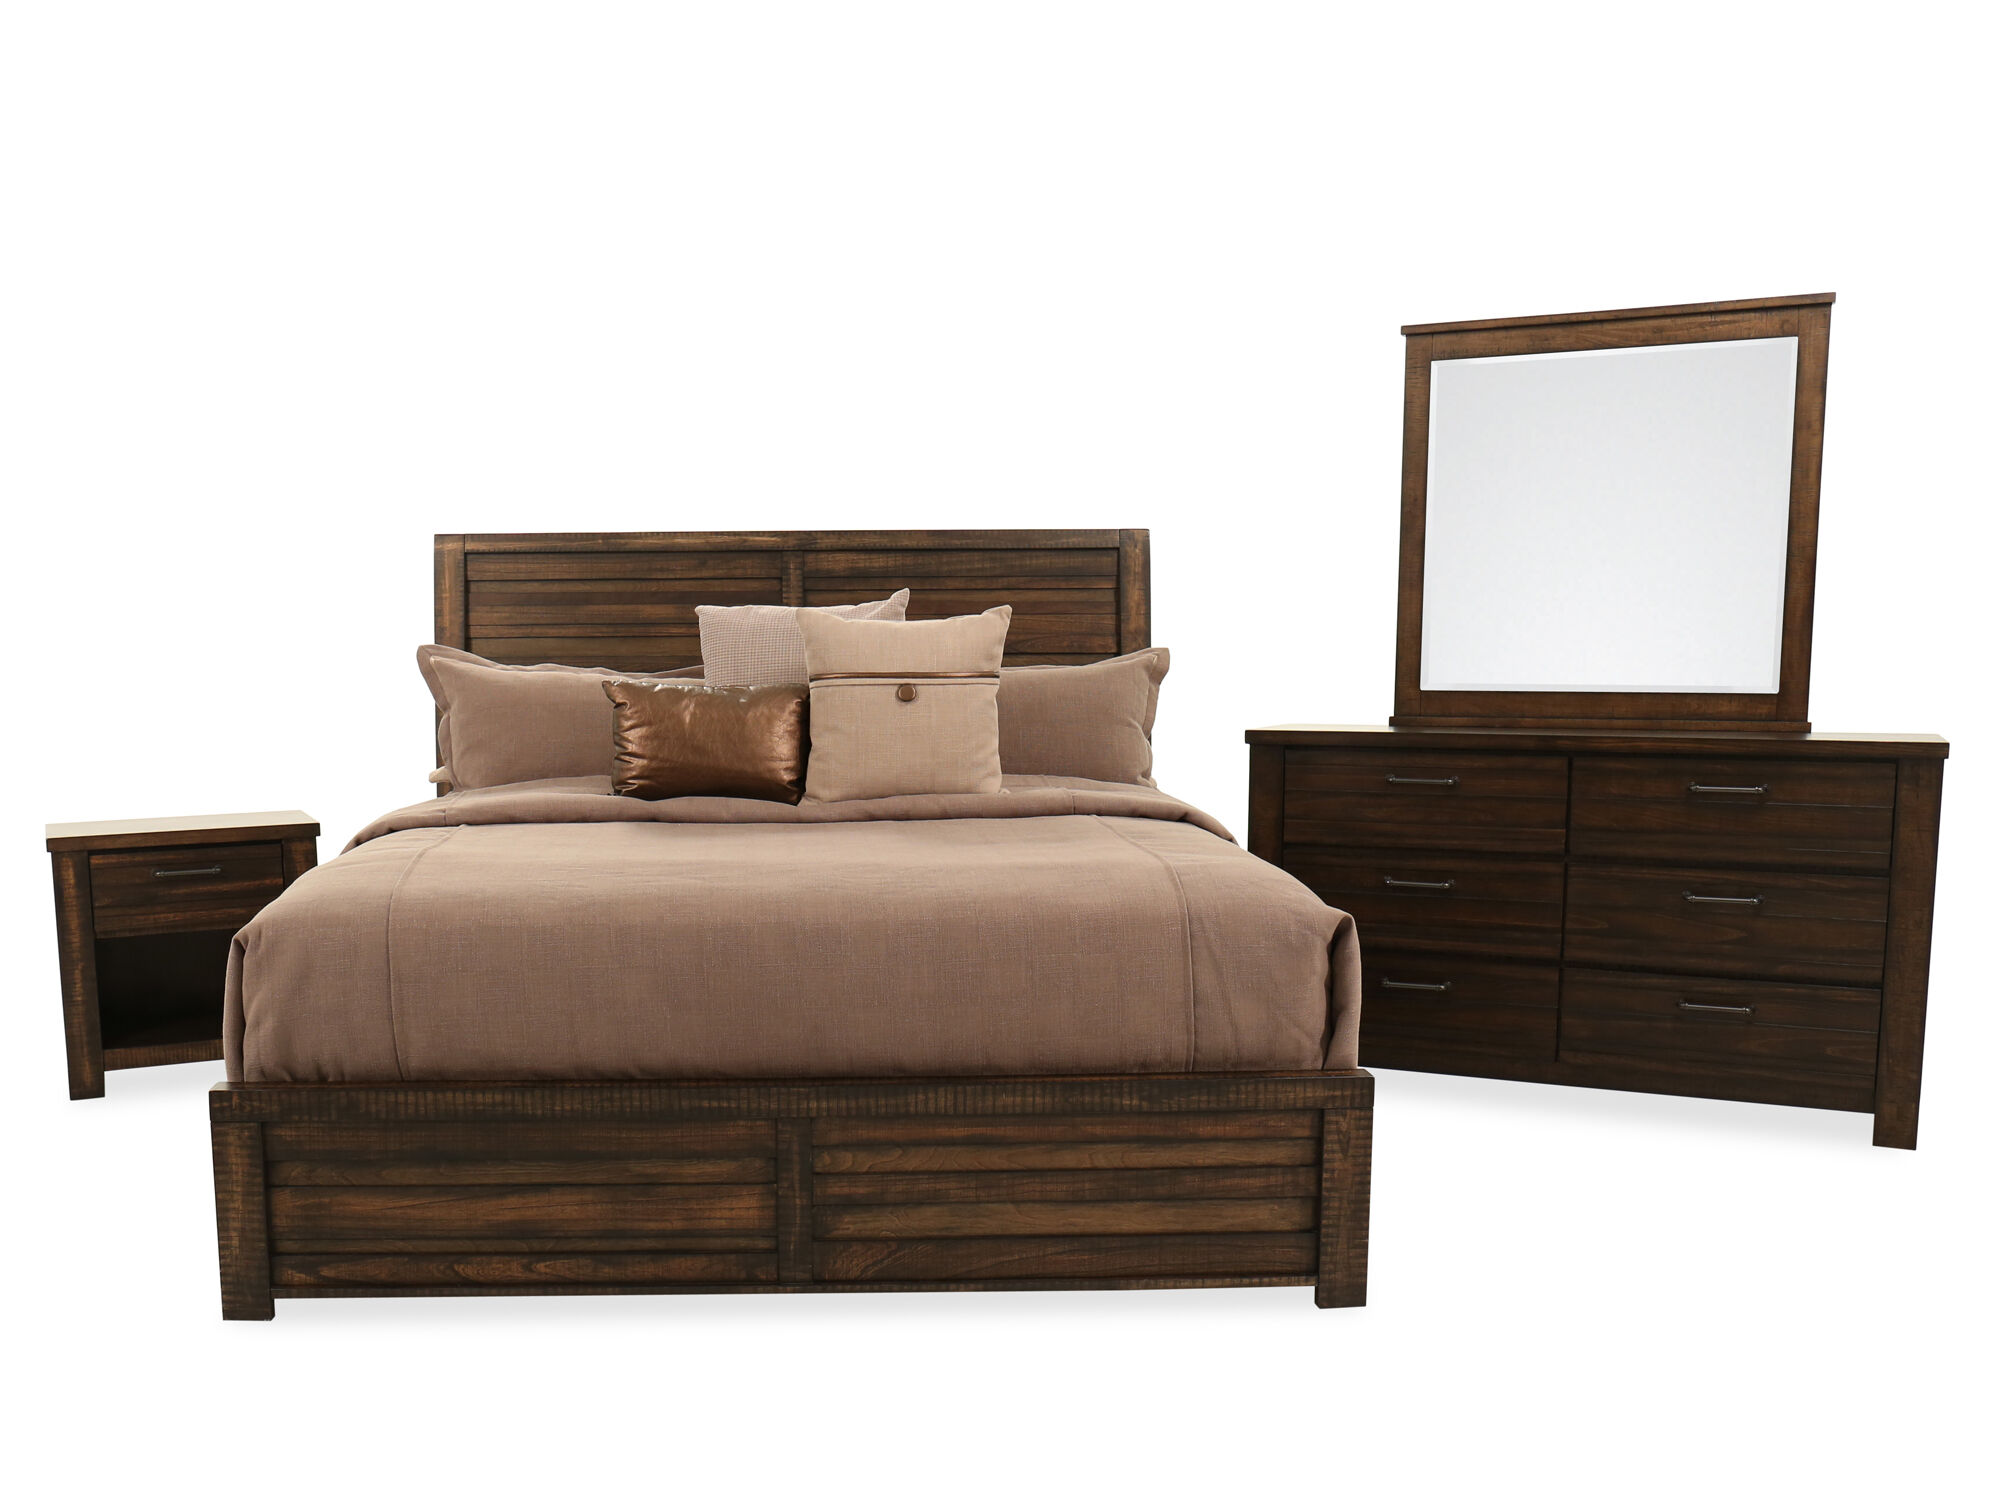 samuel lawrence ruff hewn bedroom suite - Samuel Lawrence Furniture